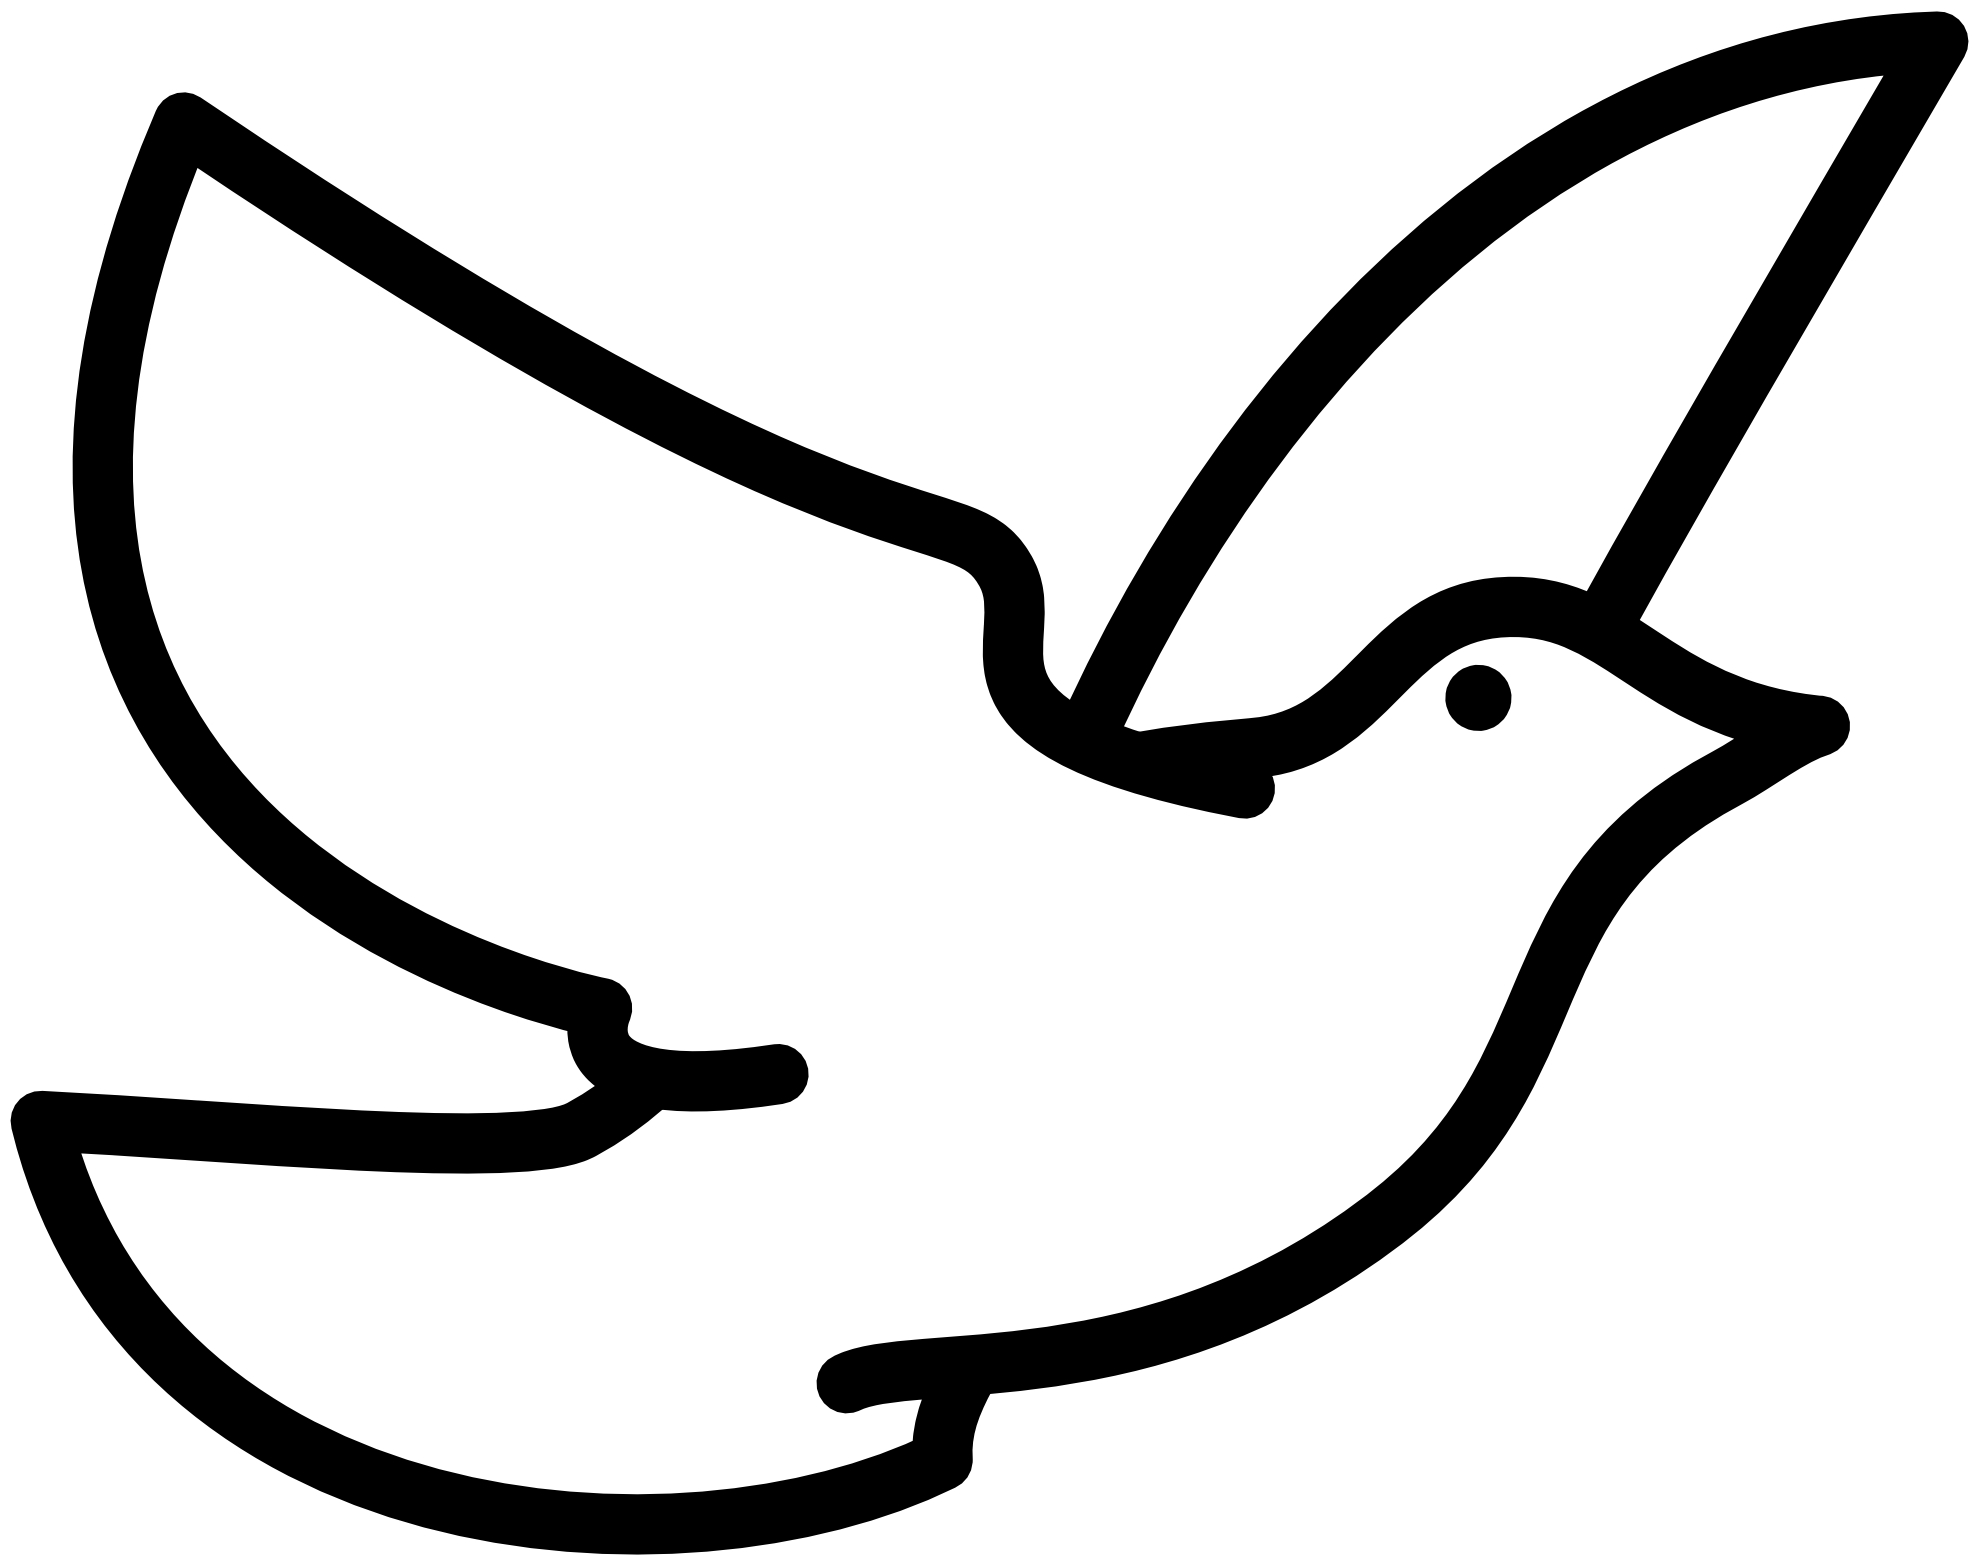 Peace dove symbol library. Holy clipart clip art black and white stock